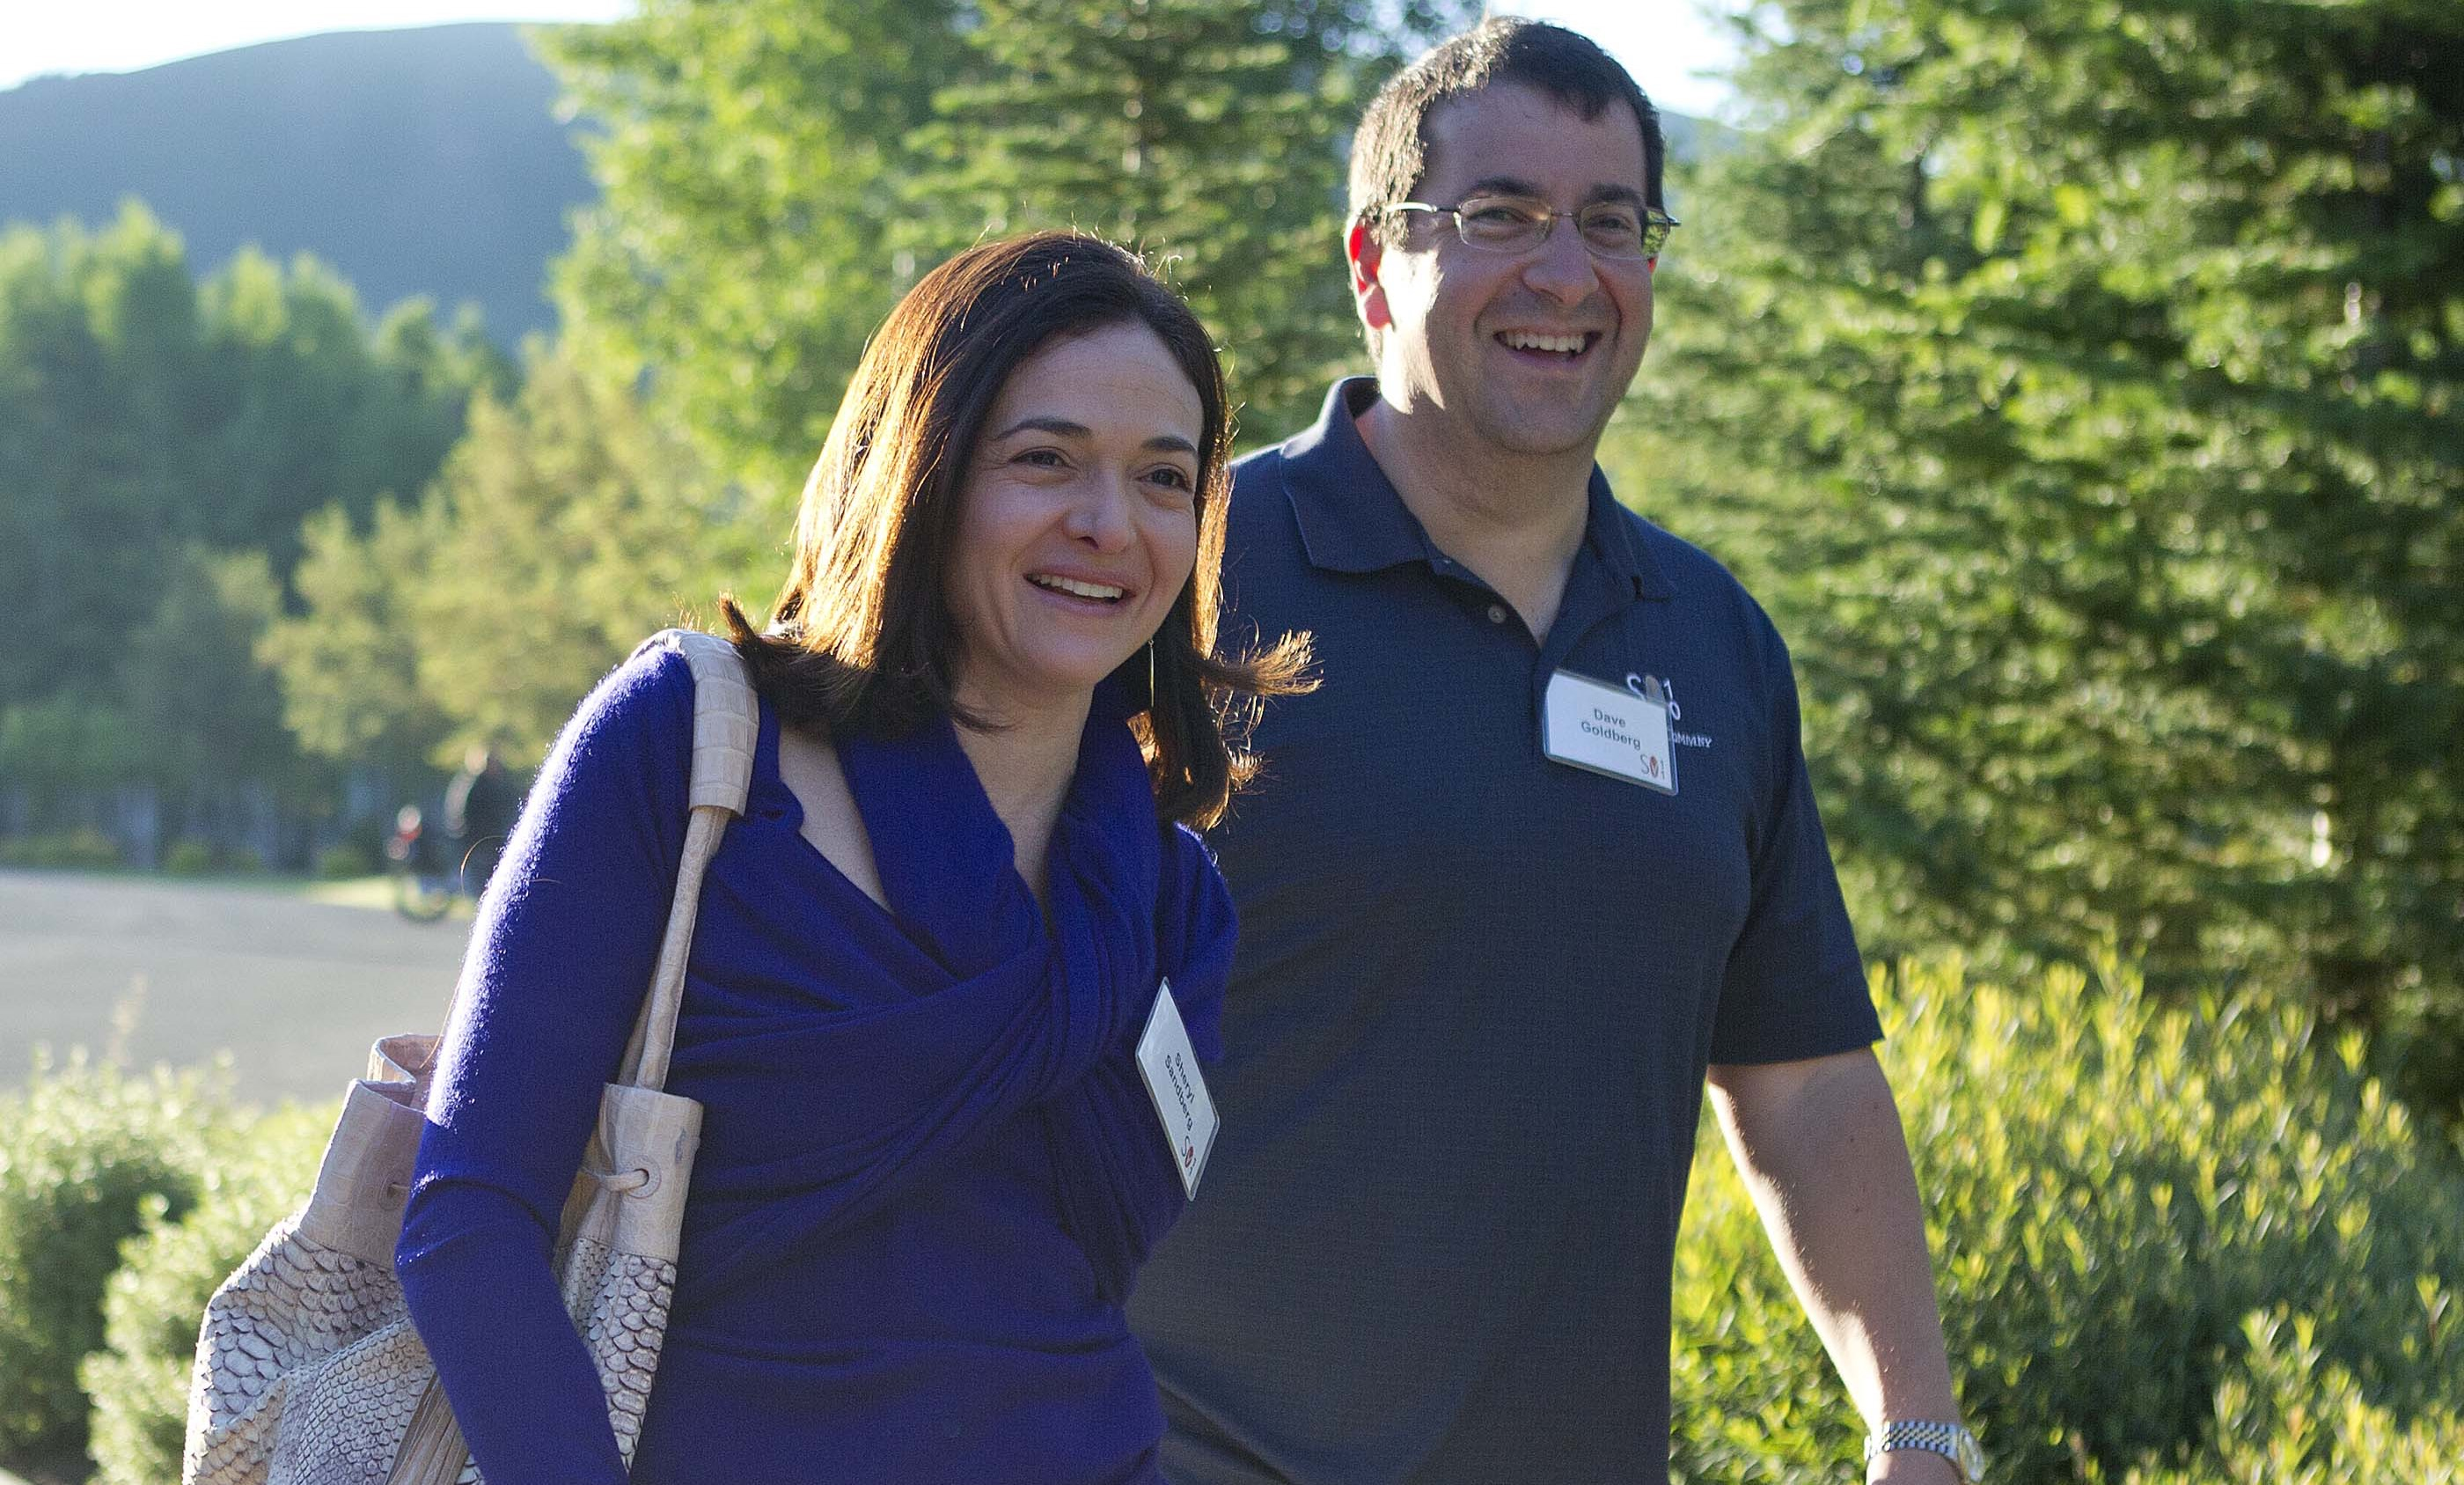 Facebook chief operating officer Sheryl Sandberg, left, and Dave Goldberg, CEO of Survey Monkey, arrive at the Sun Valley Inn for the 2011 Allen and Co. Sun Valley Conference, Wednesday, July 6, 2011, in Sun Valley, Idaho (AP Photo/Julie Jacobson)